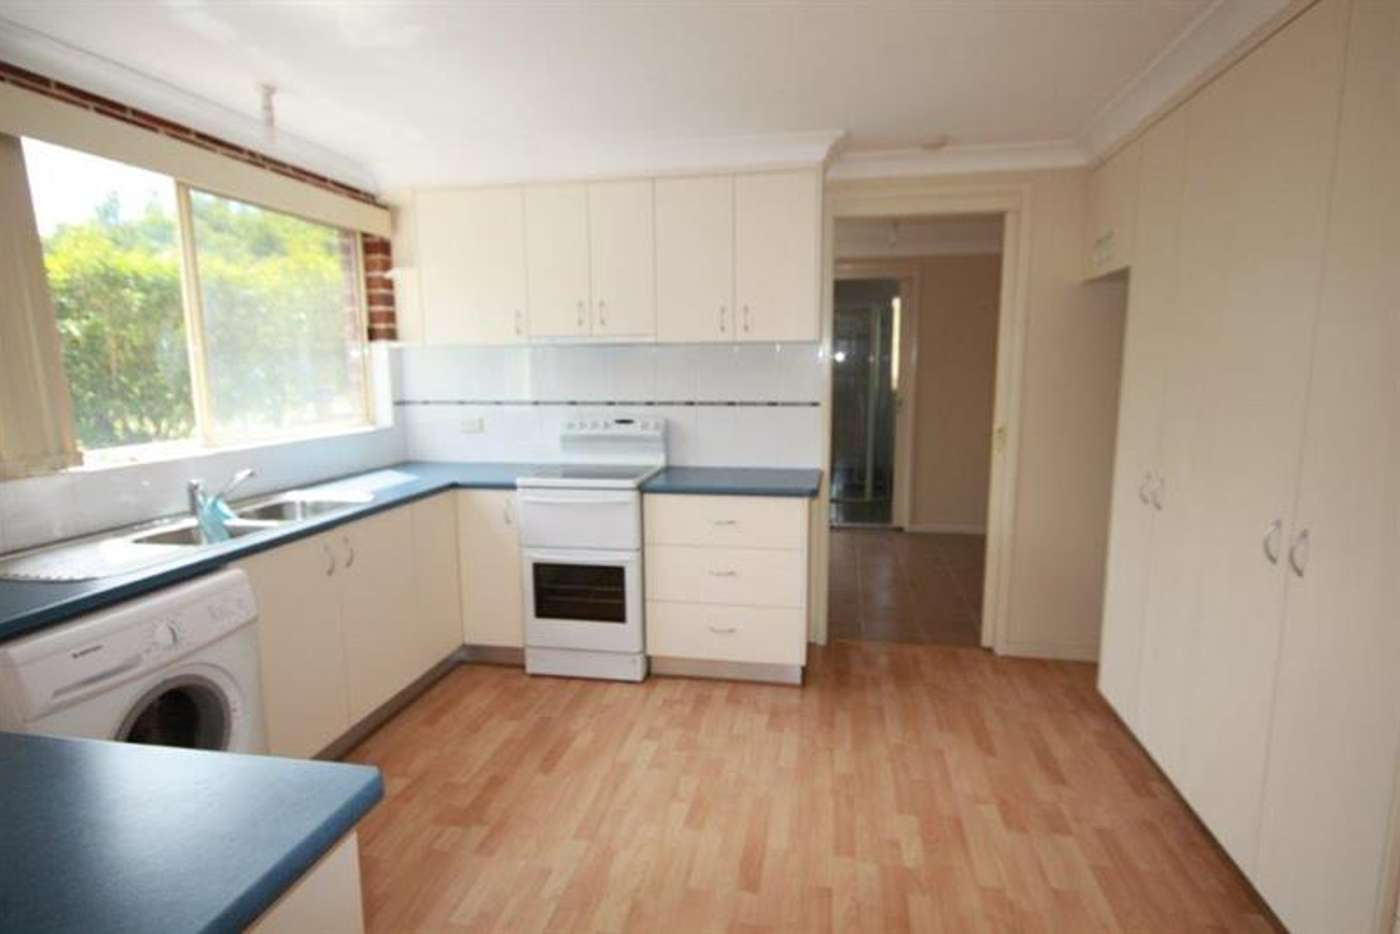 Main view of Homely unit listing, 1/14 Seabreeze Place, Thirroul NSW 2515